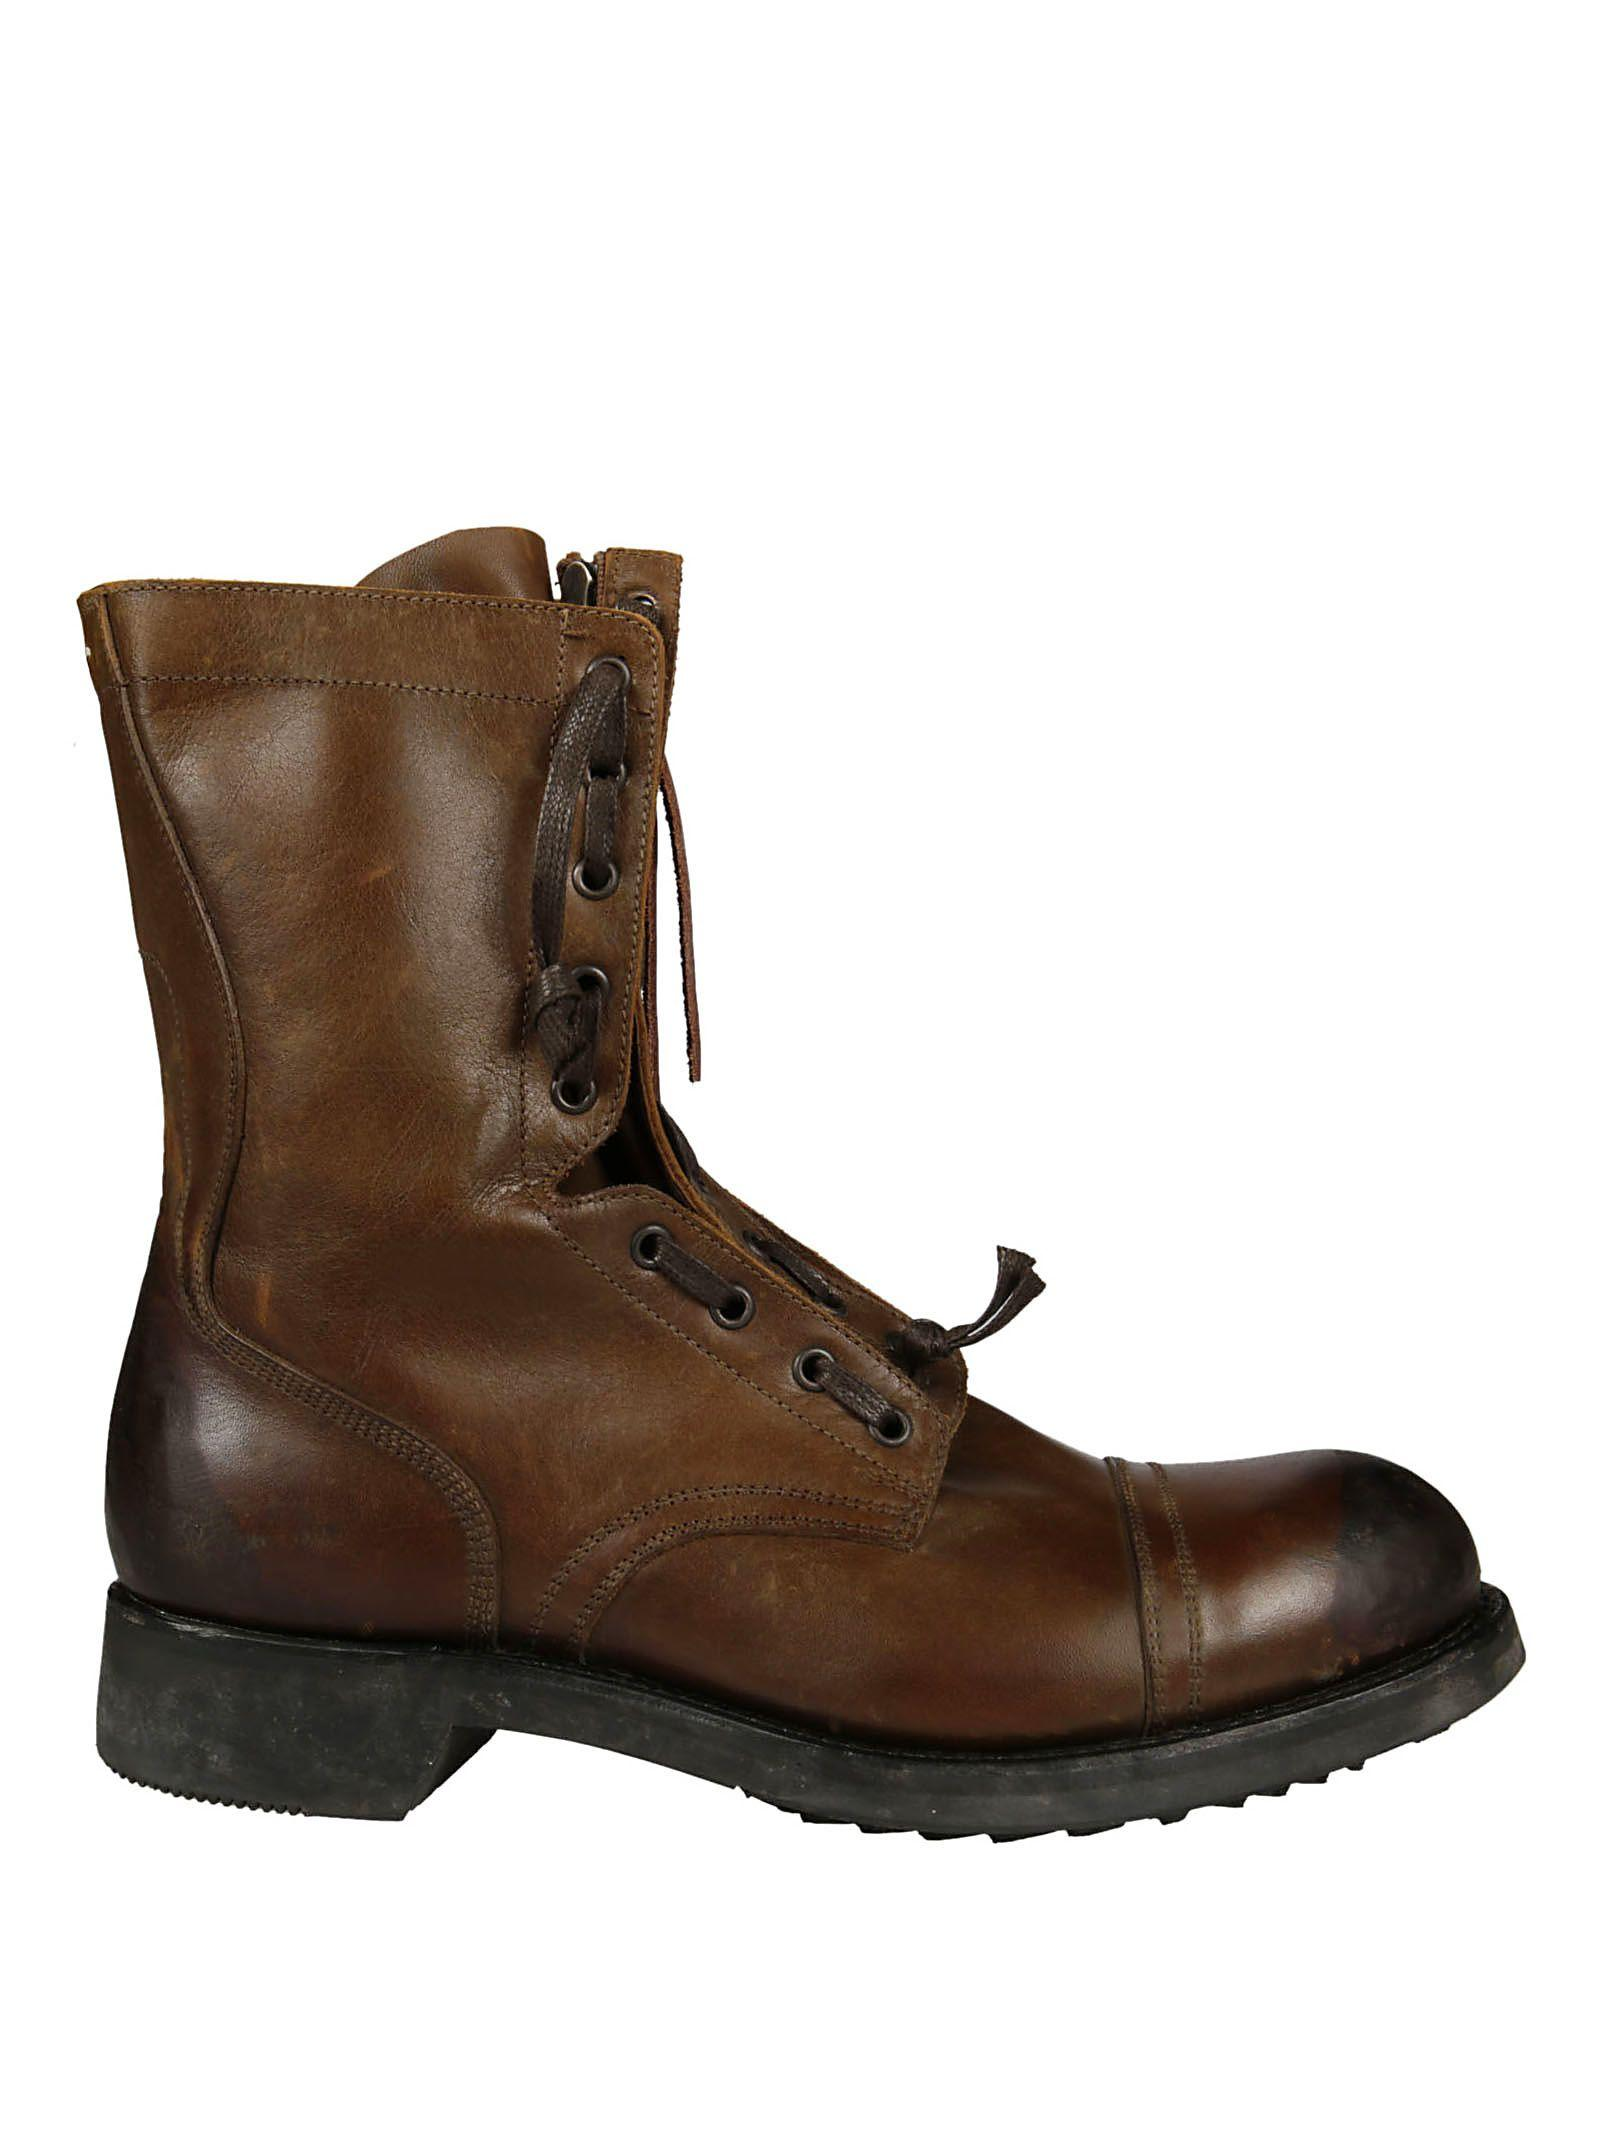 Maison Margiela Classic Boots In Brown